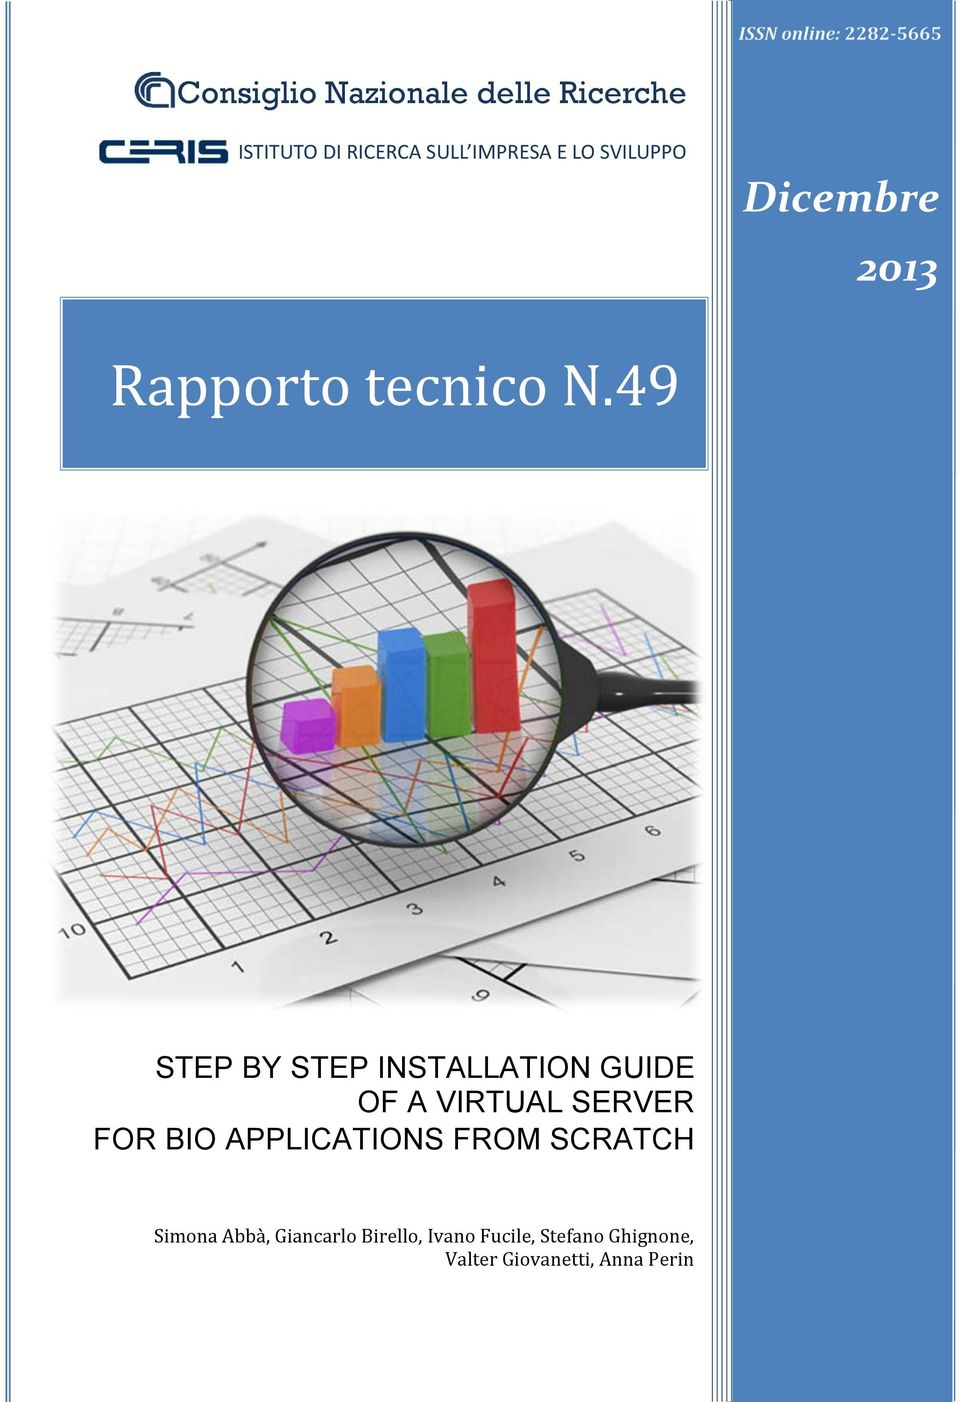 49 STEP BY STEP INSTALLATION GUIDE OF A VIRTUAL SERVER FOR BIO